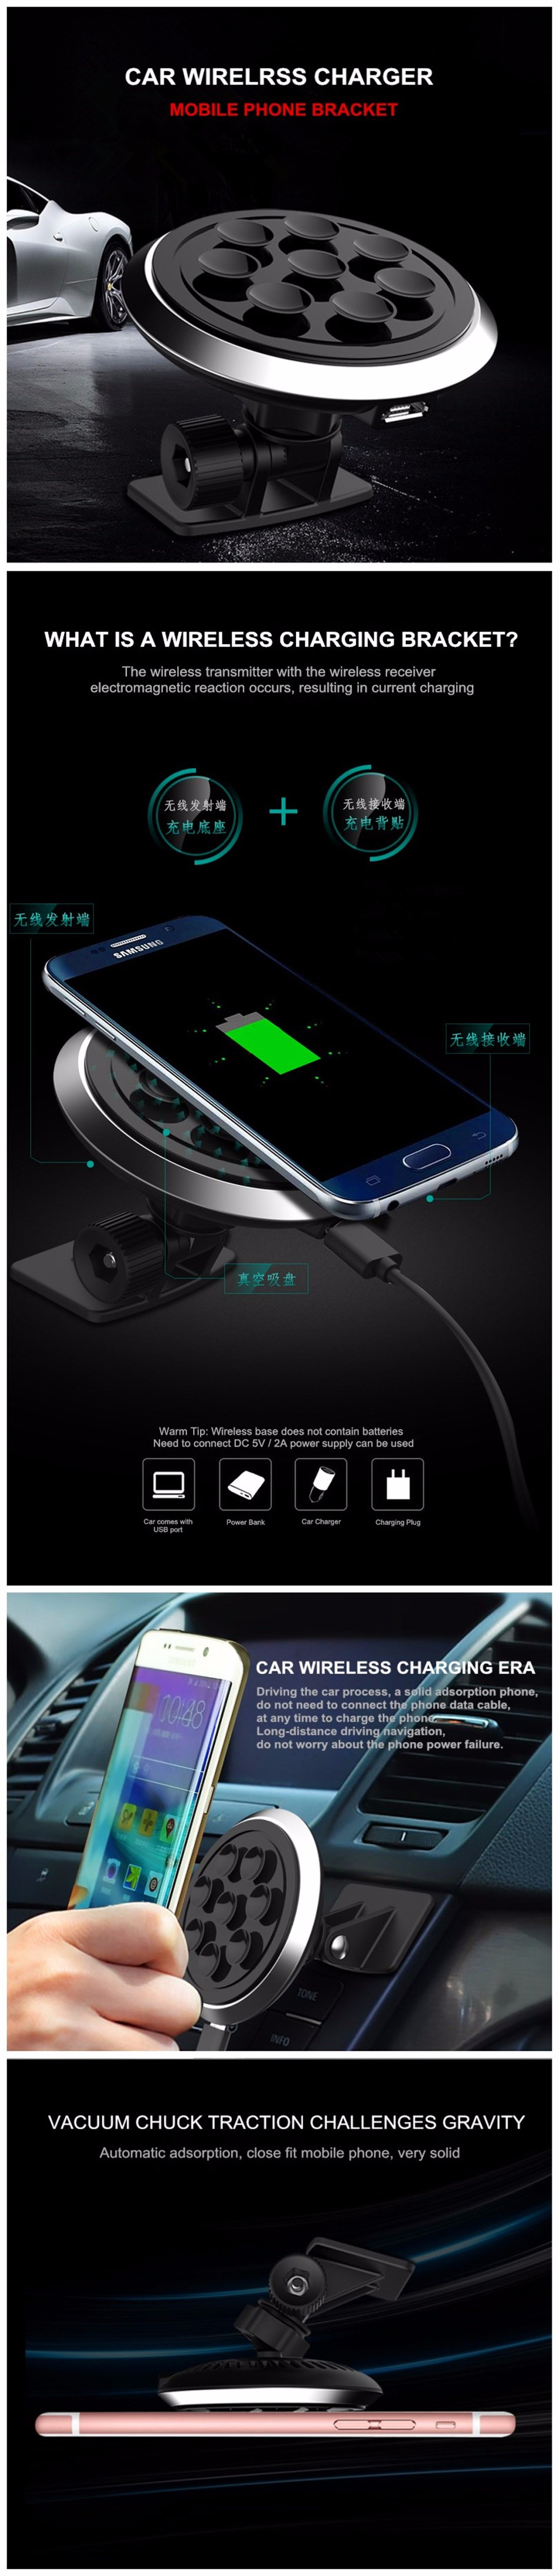 Amstar Qi Car Wireless Charger Charging Pad Chager Universal Receiver Reveres Port For Smartphone Samsung Galaxy S8 S7 S6 Note 5 Nexus 4 Lumia 920